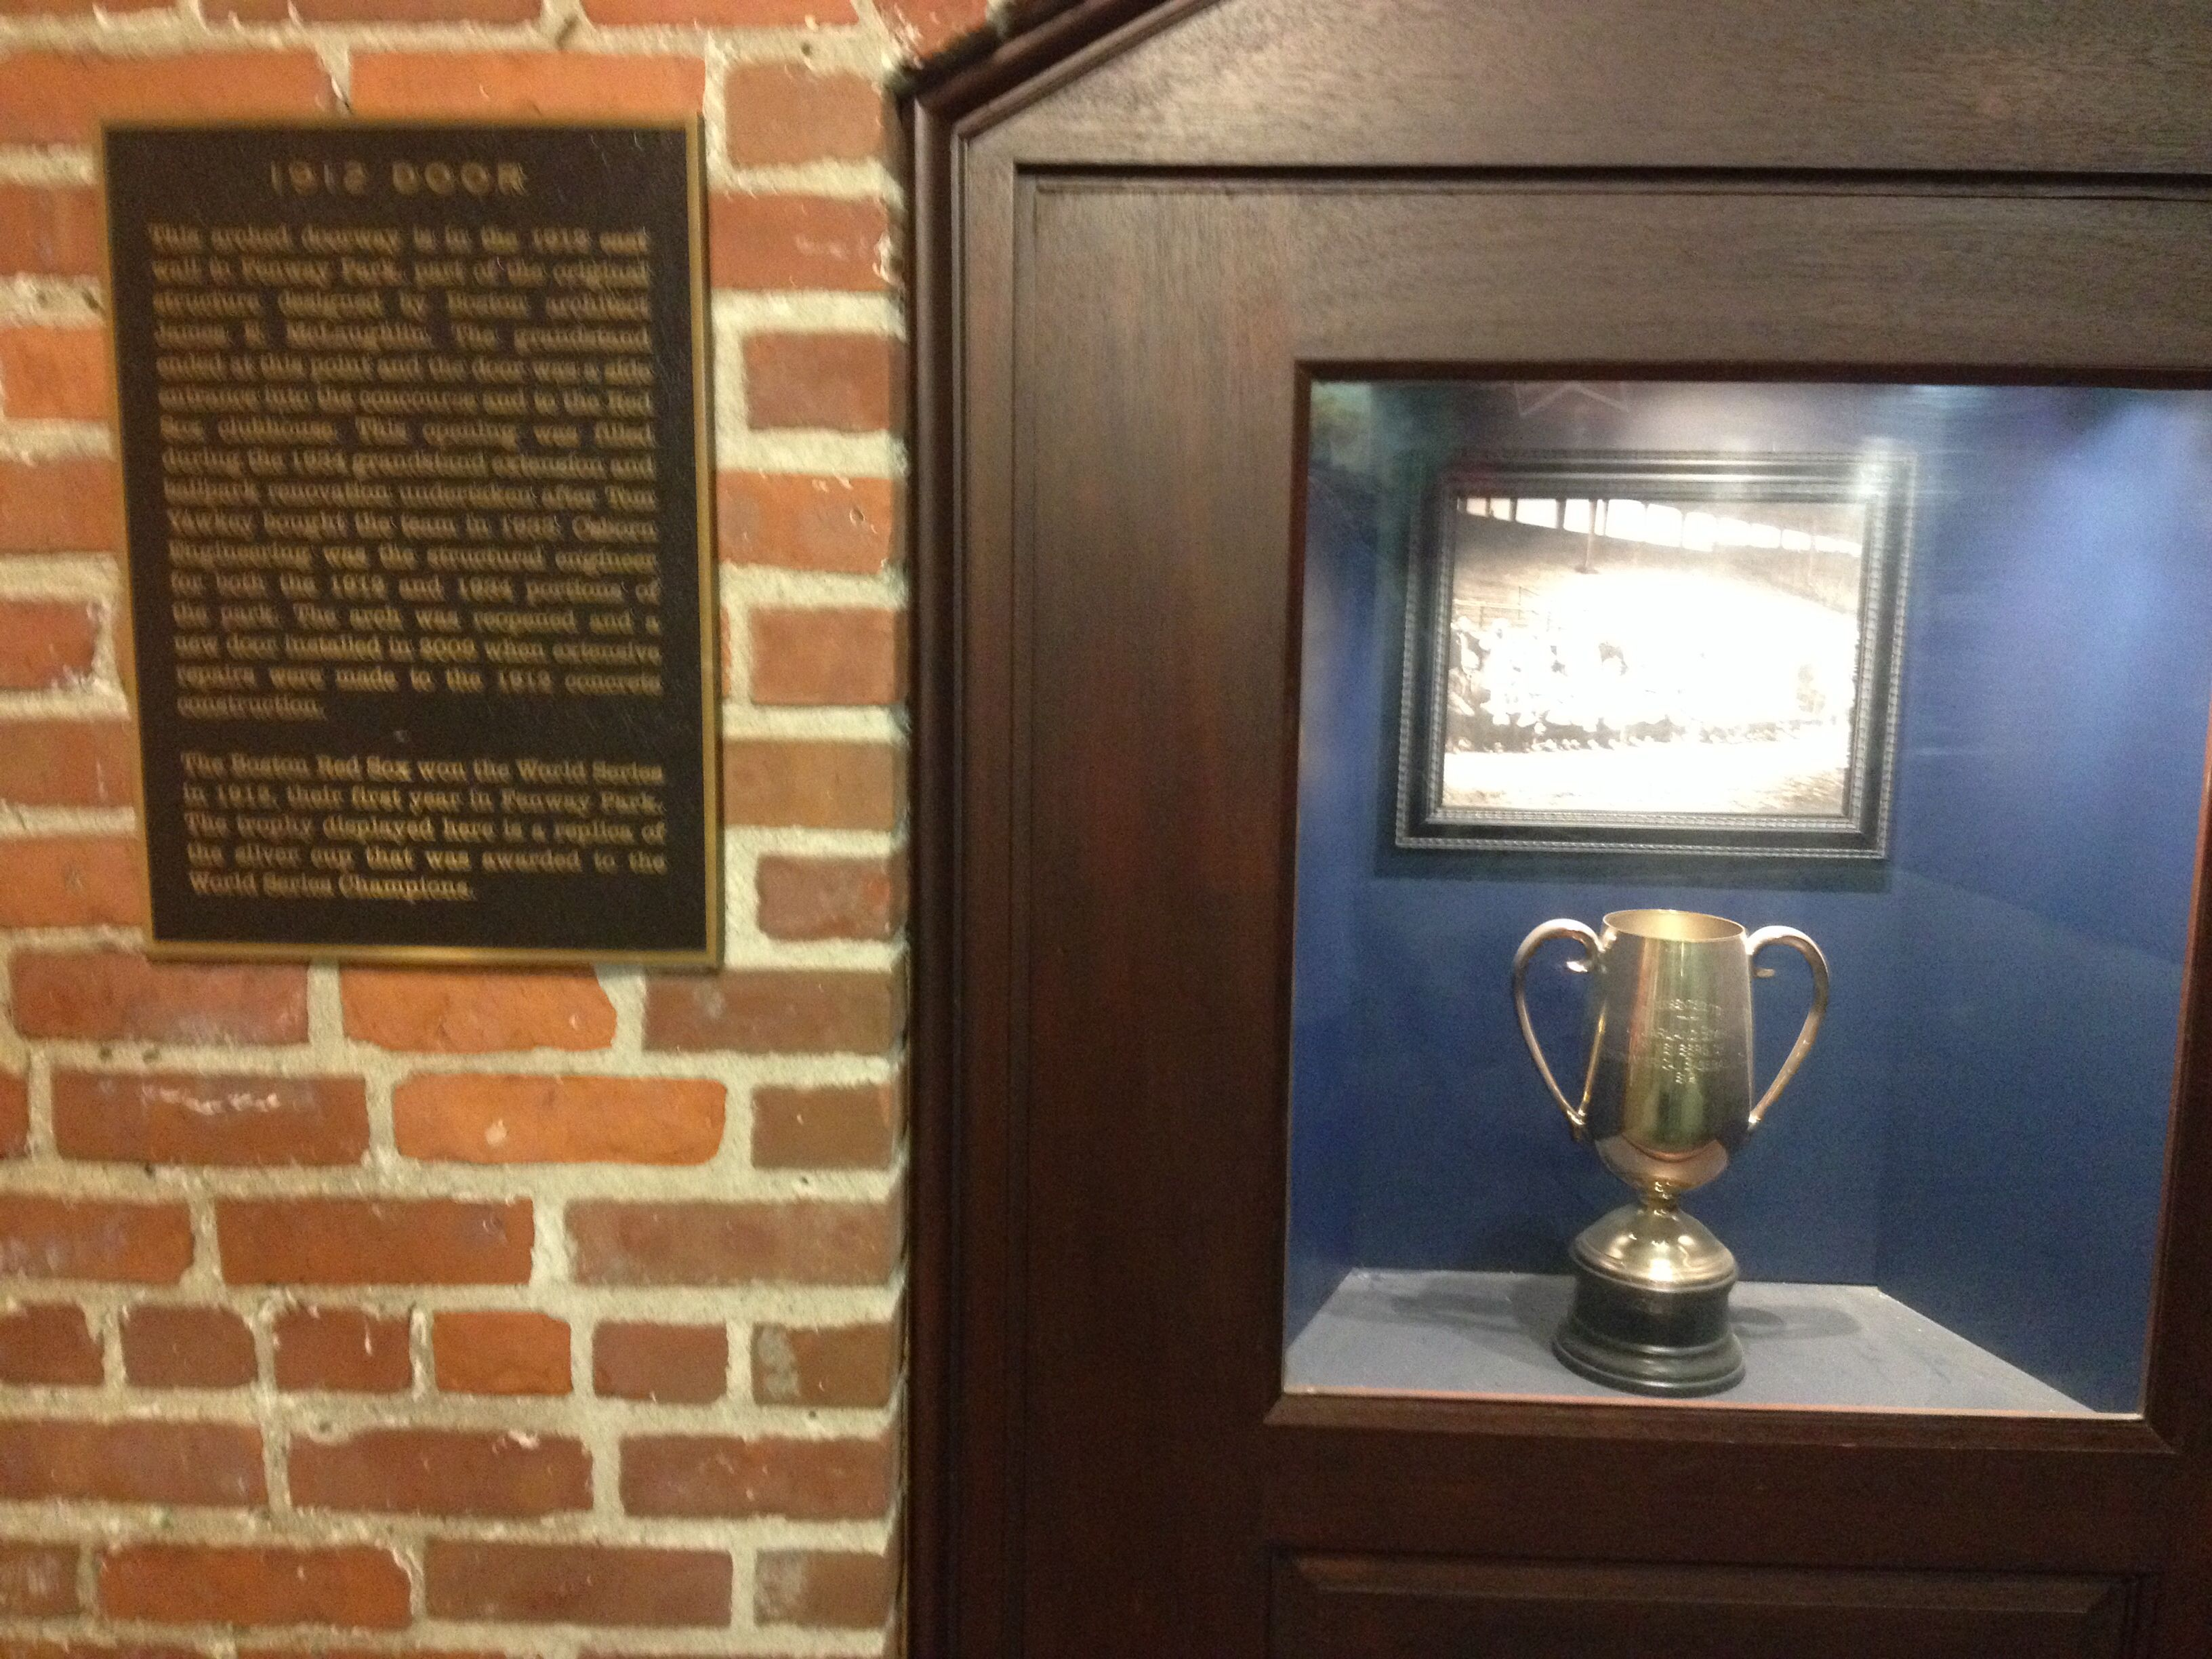 Boston Red Sox 1912 door and trophy & Boston Red Sox 1912 door and trophy | Boston sports | Pinterest ...